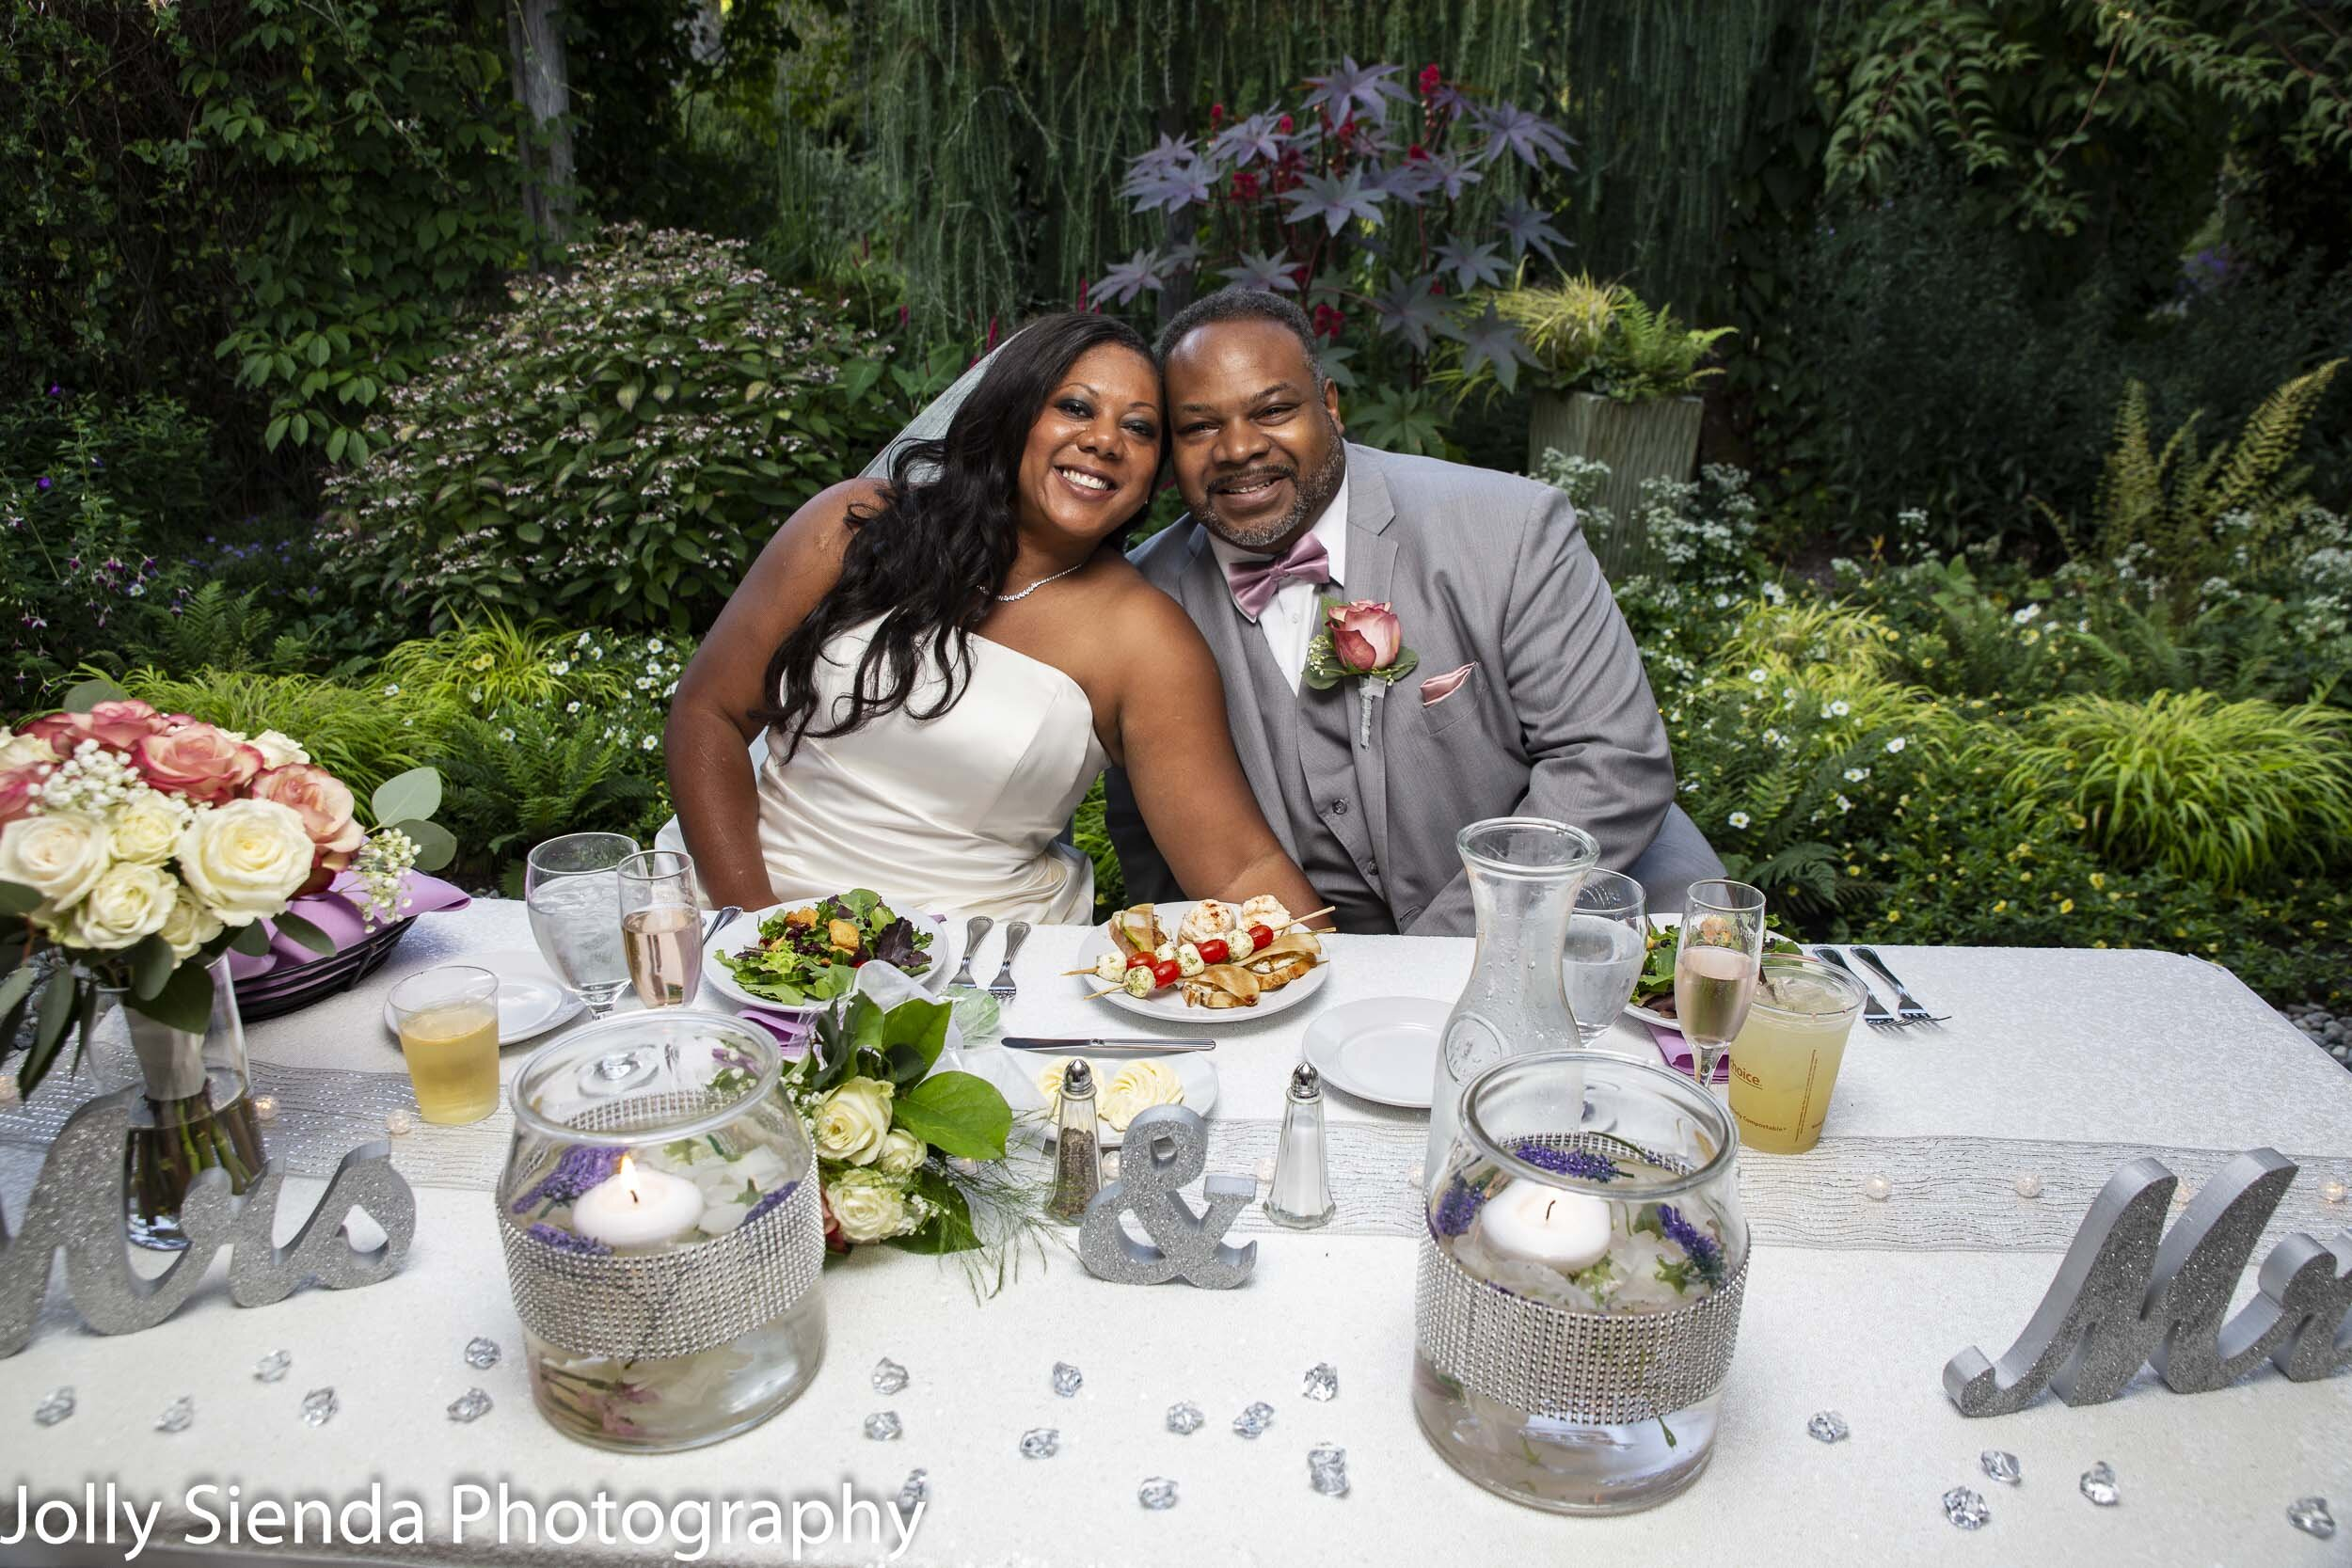 Mr. and Mrs. Jefferson Butler at their wedding reception, Heronswood Garden by Jolly Sienda Photography